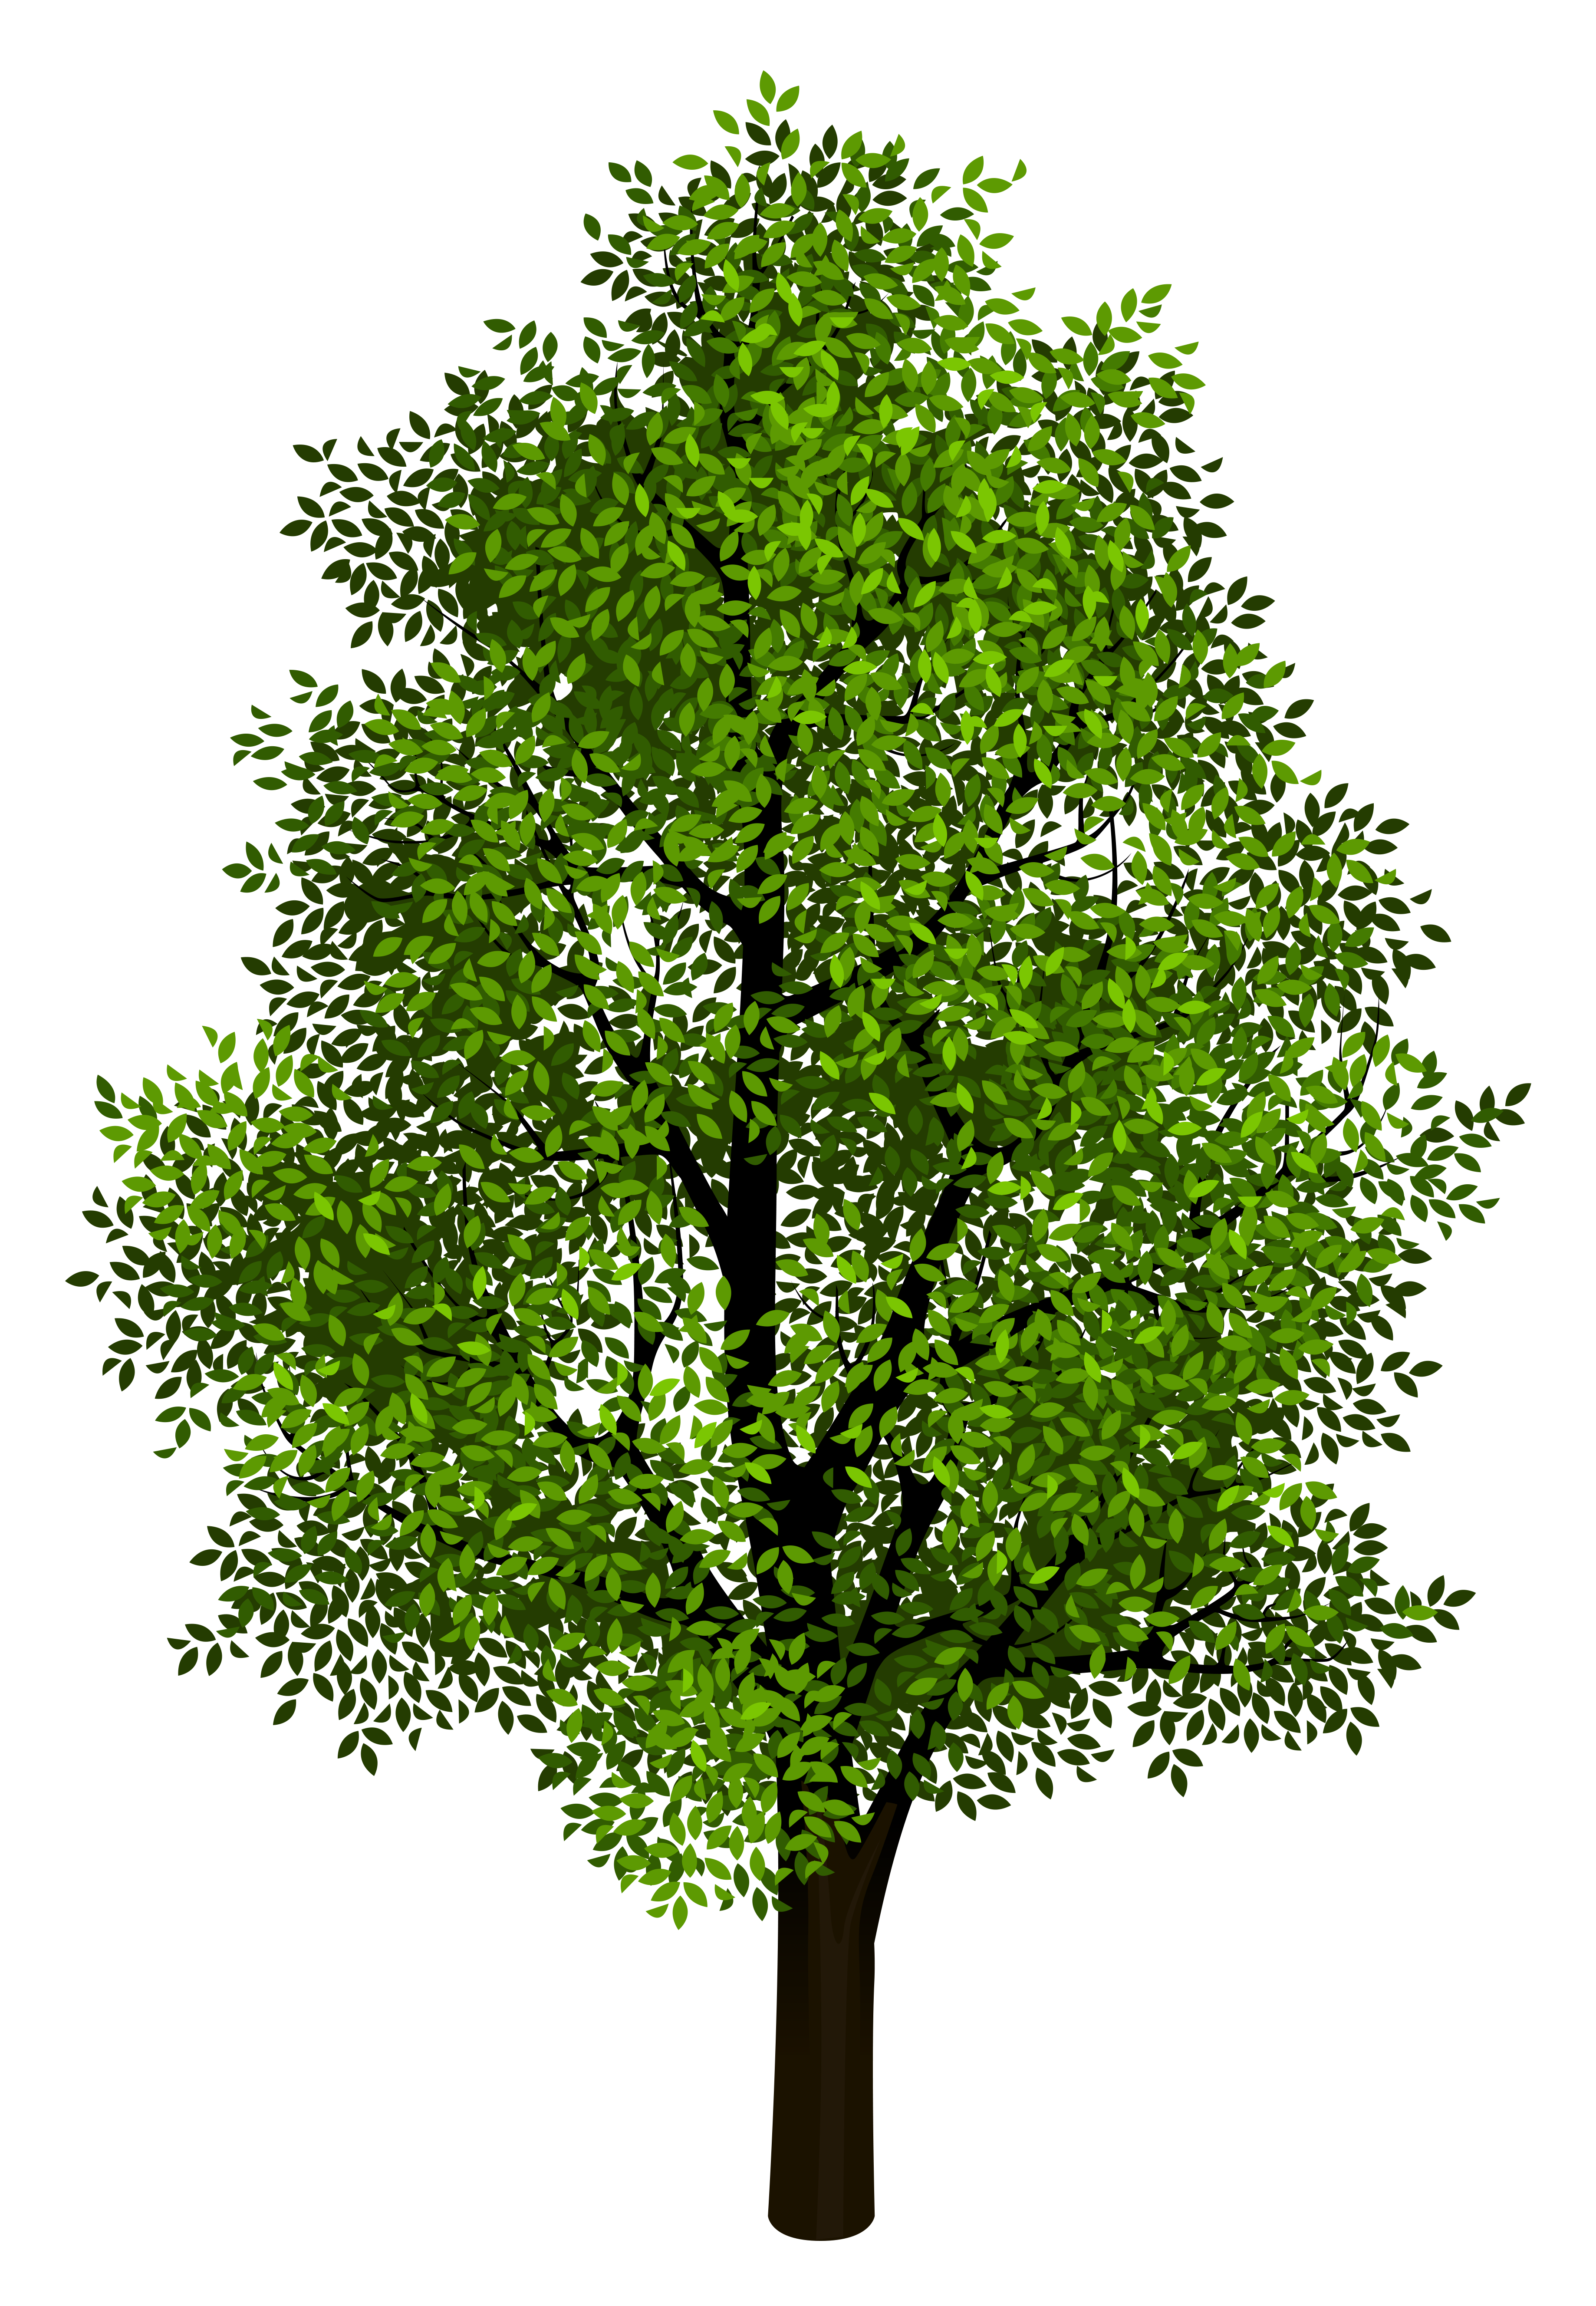 Clipart grass shrub. Green tree transparent picture